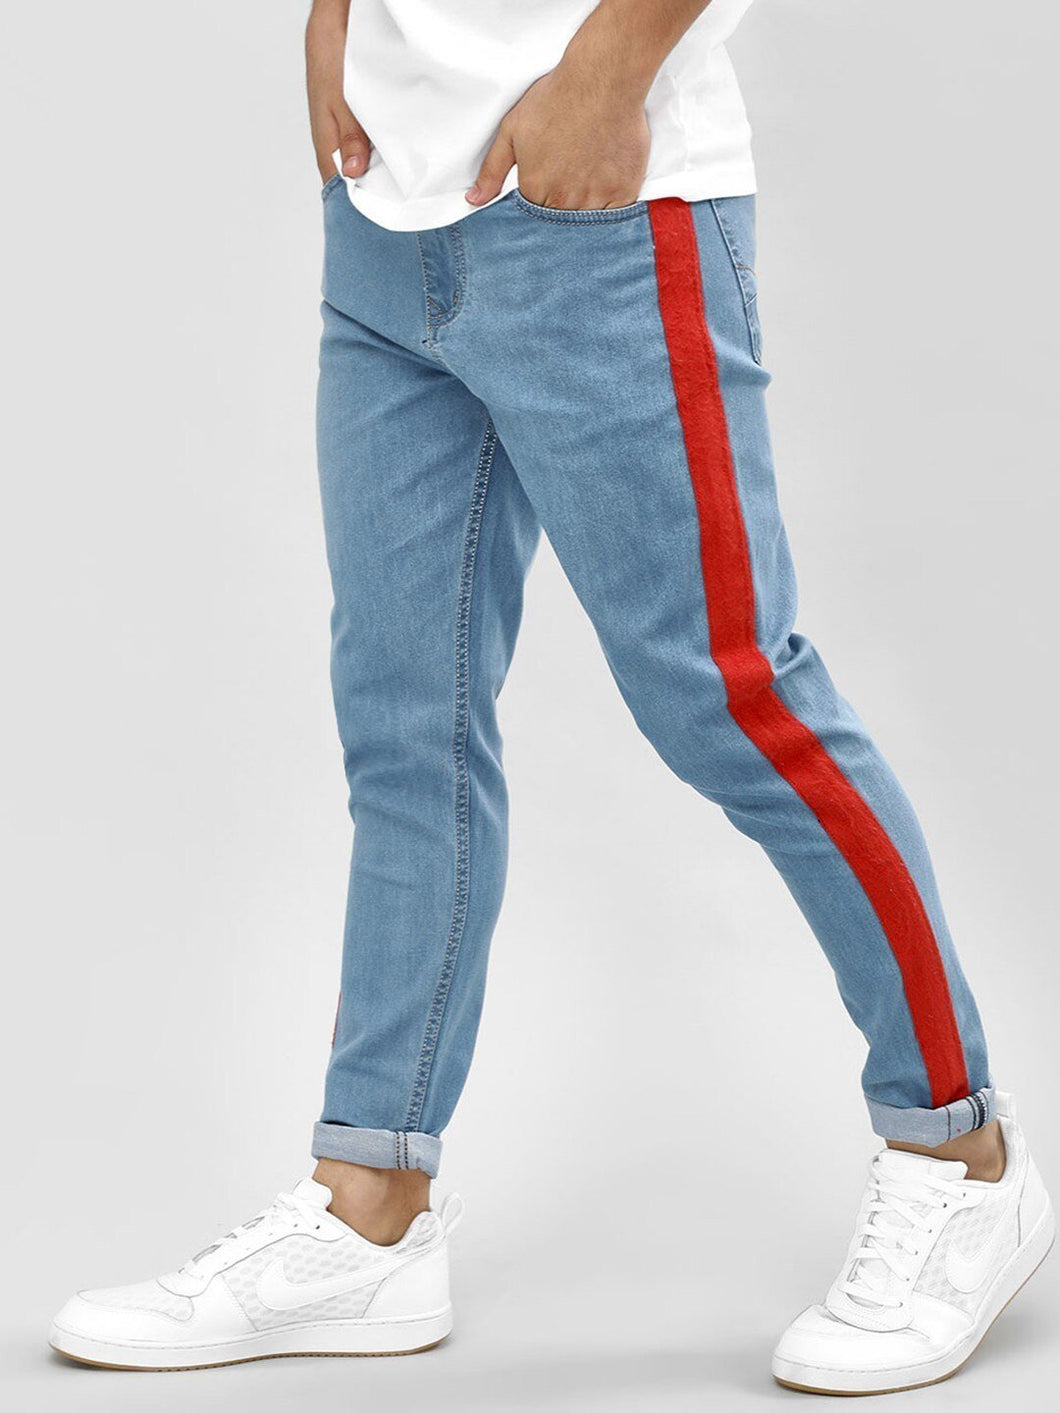 Side strip Joggers Denim Rs. 1699 | Book for Rs. 31 only